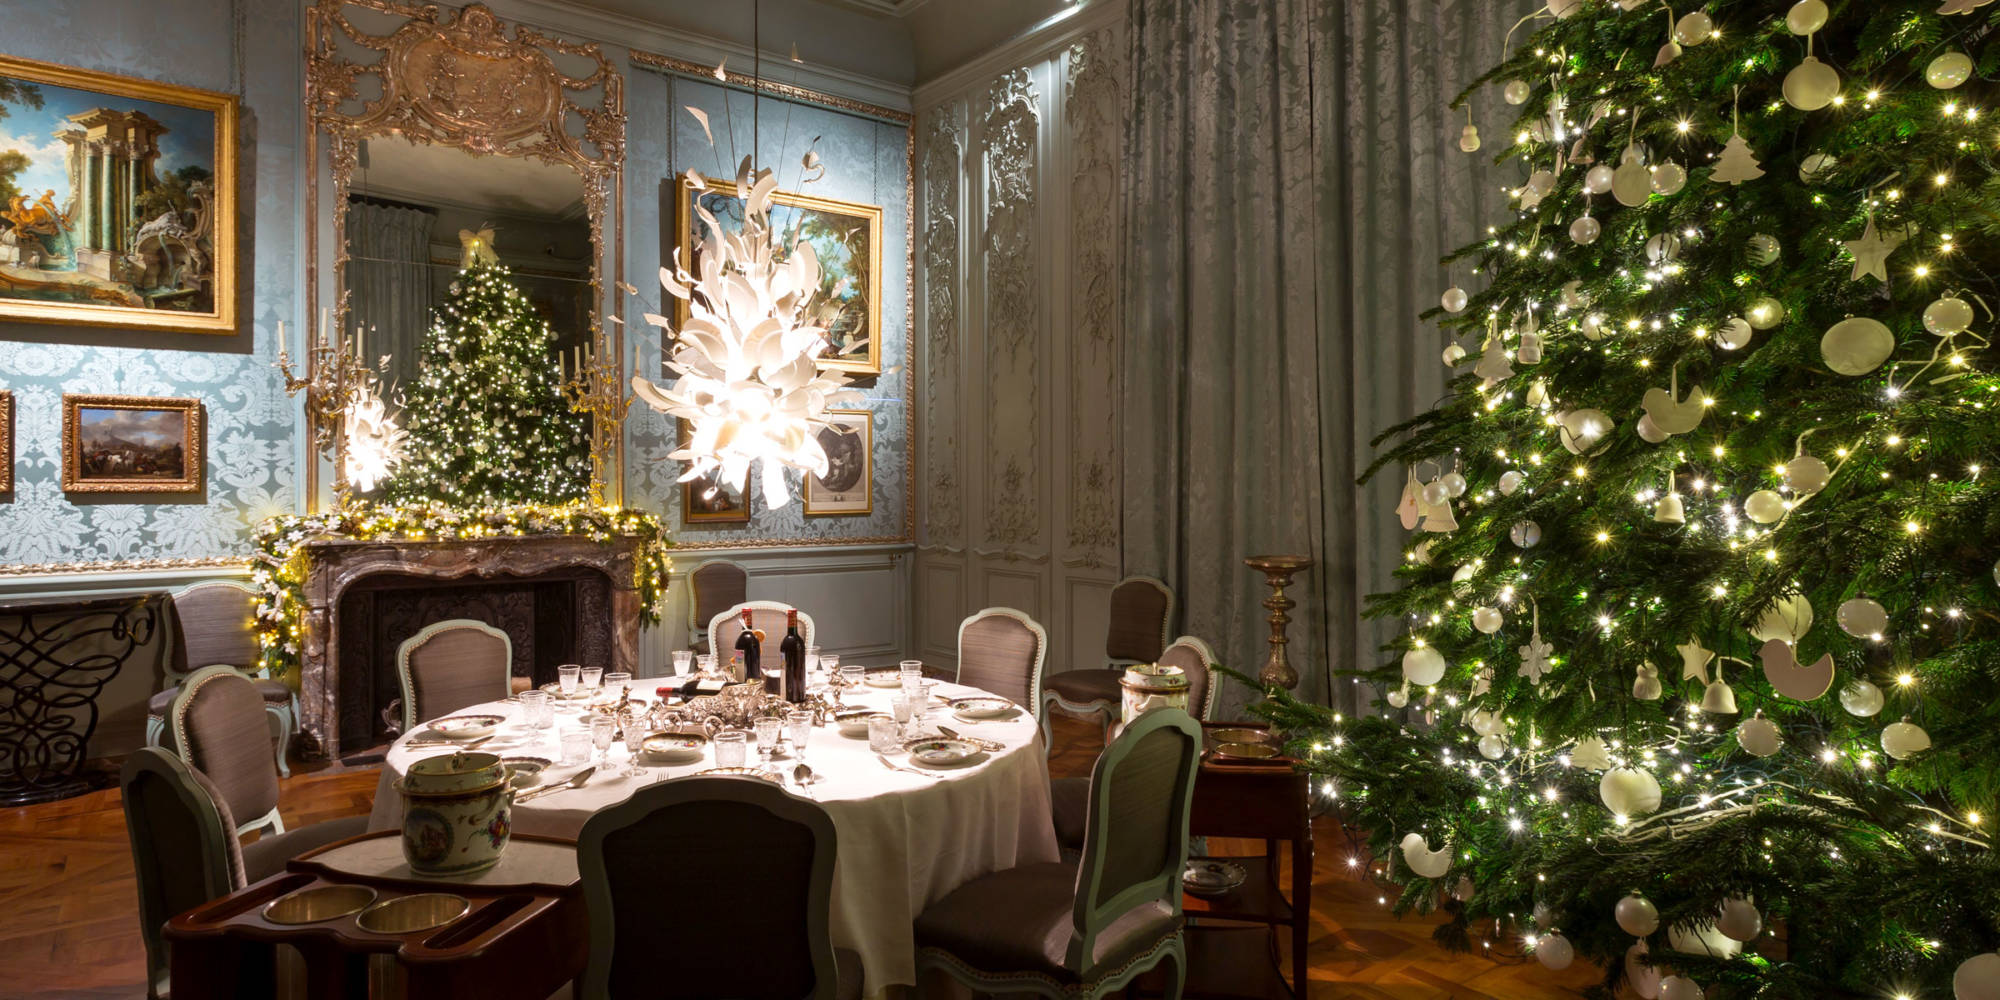 Blue Dining Room decorated for Christmas